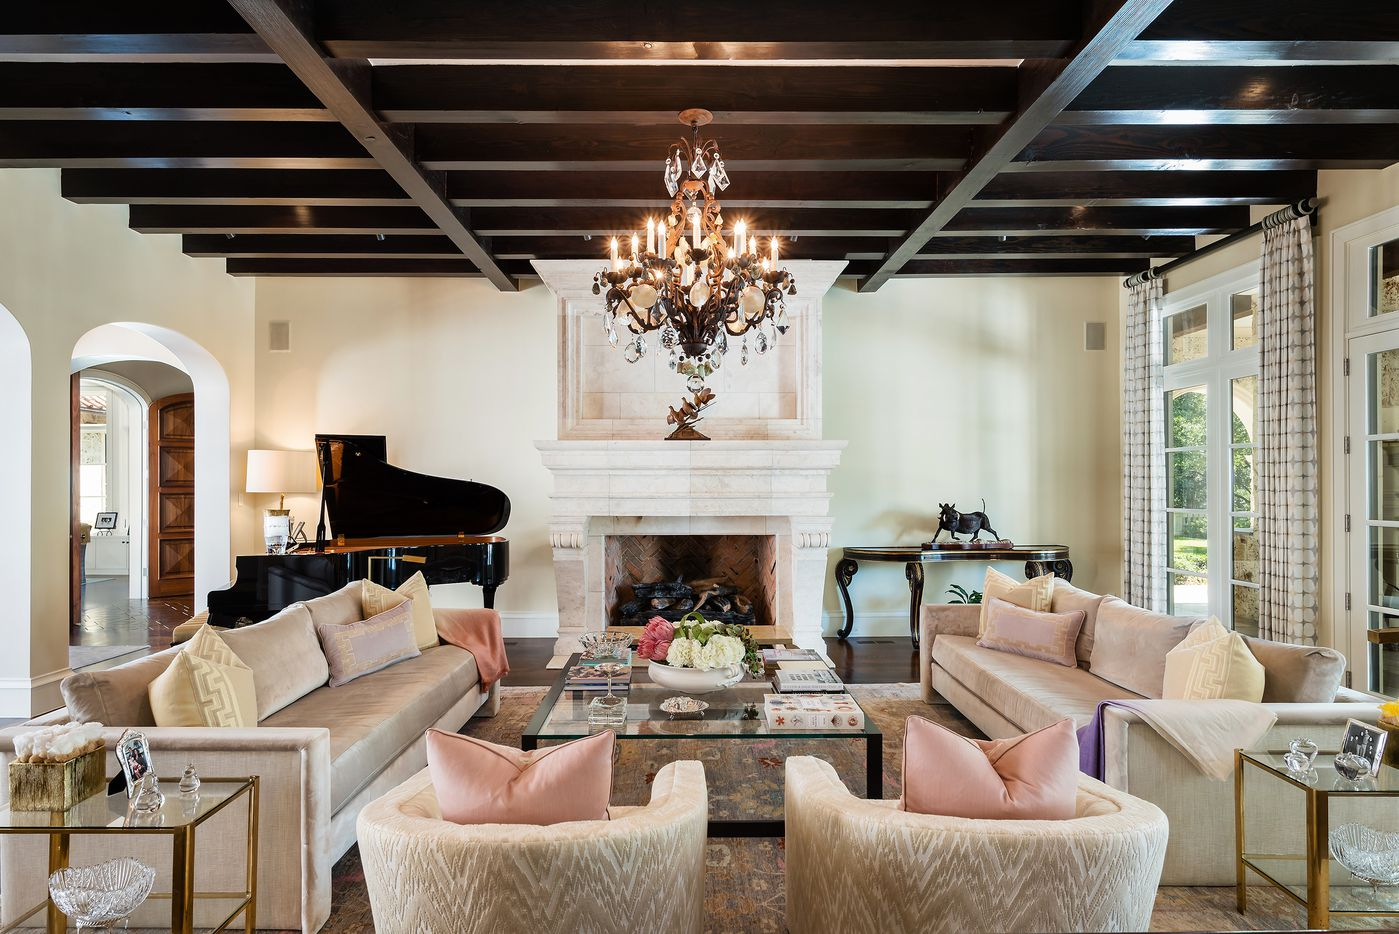 Take a look at the home at 5020 Elm Hollow Drive in Dallas.